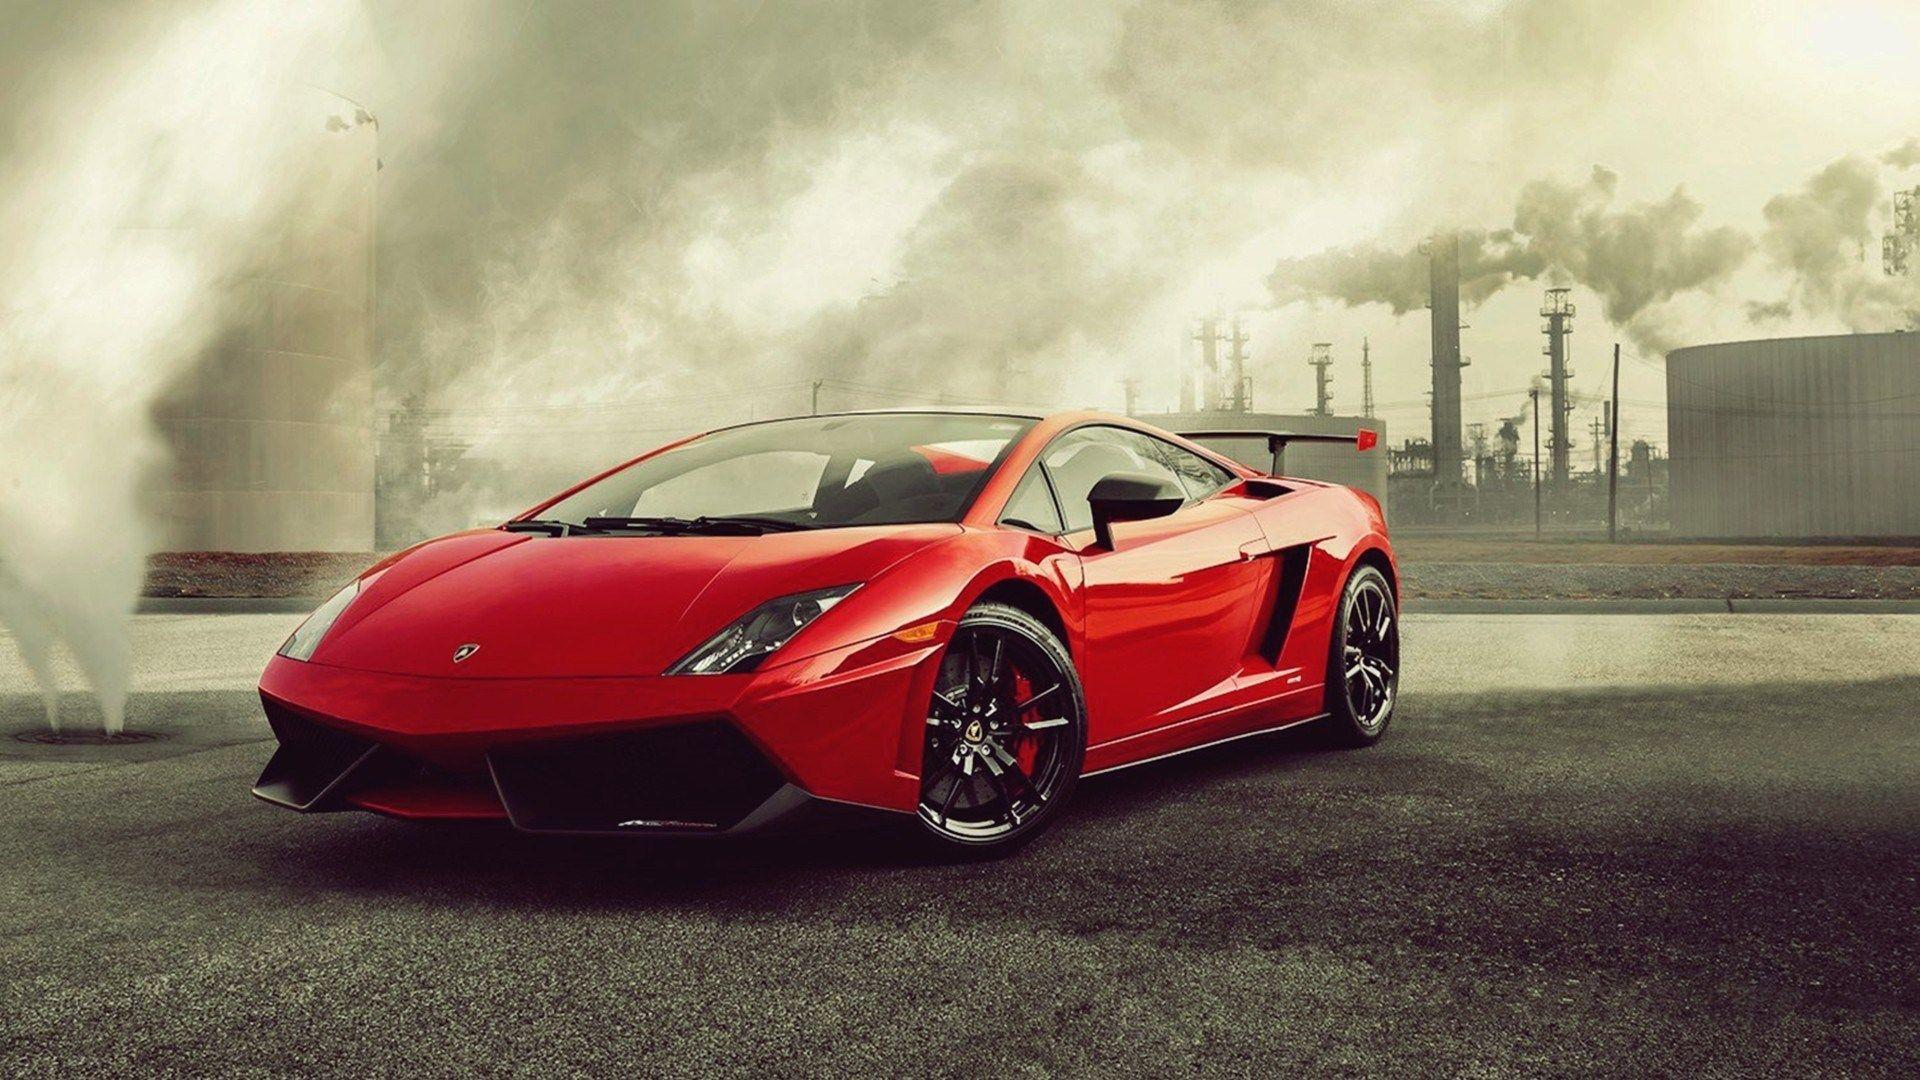 Gallardo Sports Cars Hd Wallpaper New Lamborghini Gallardo Sports .